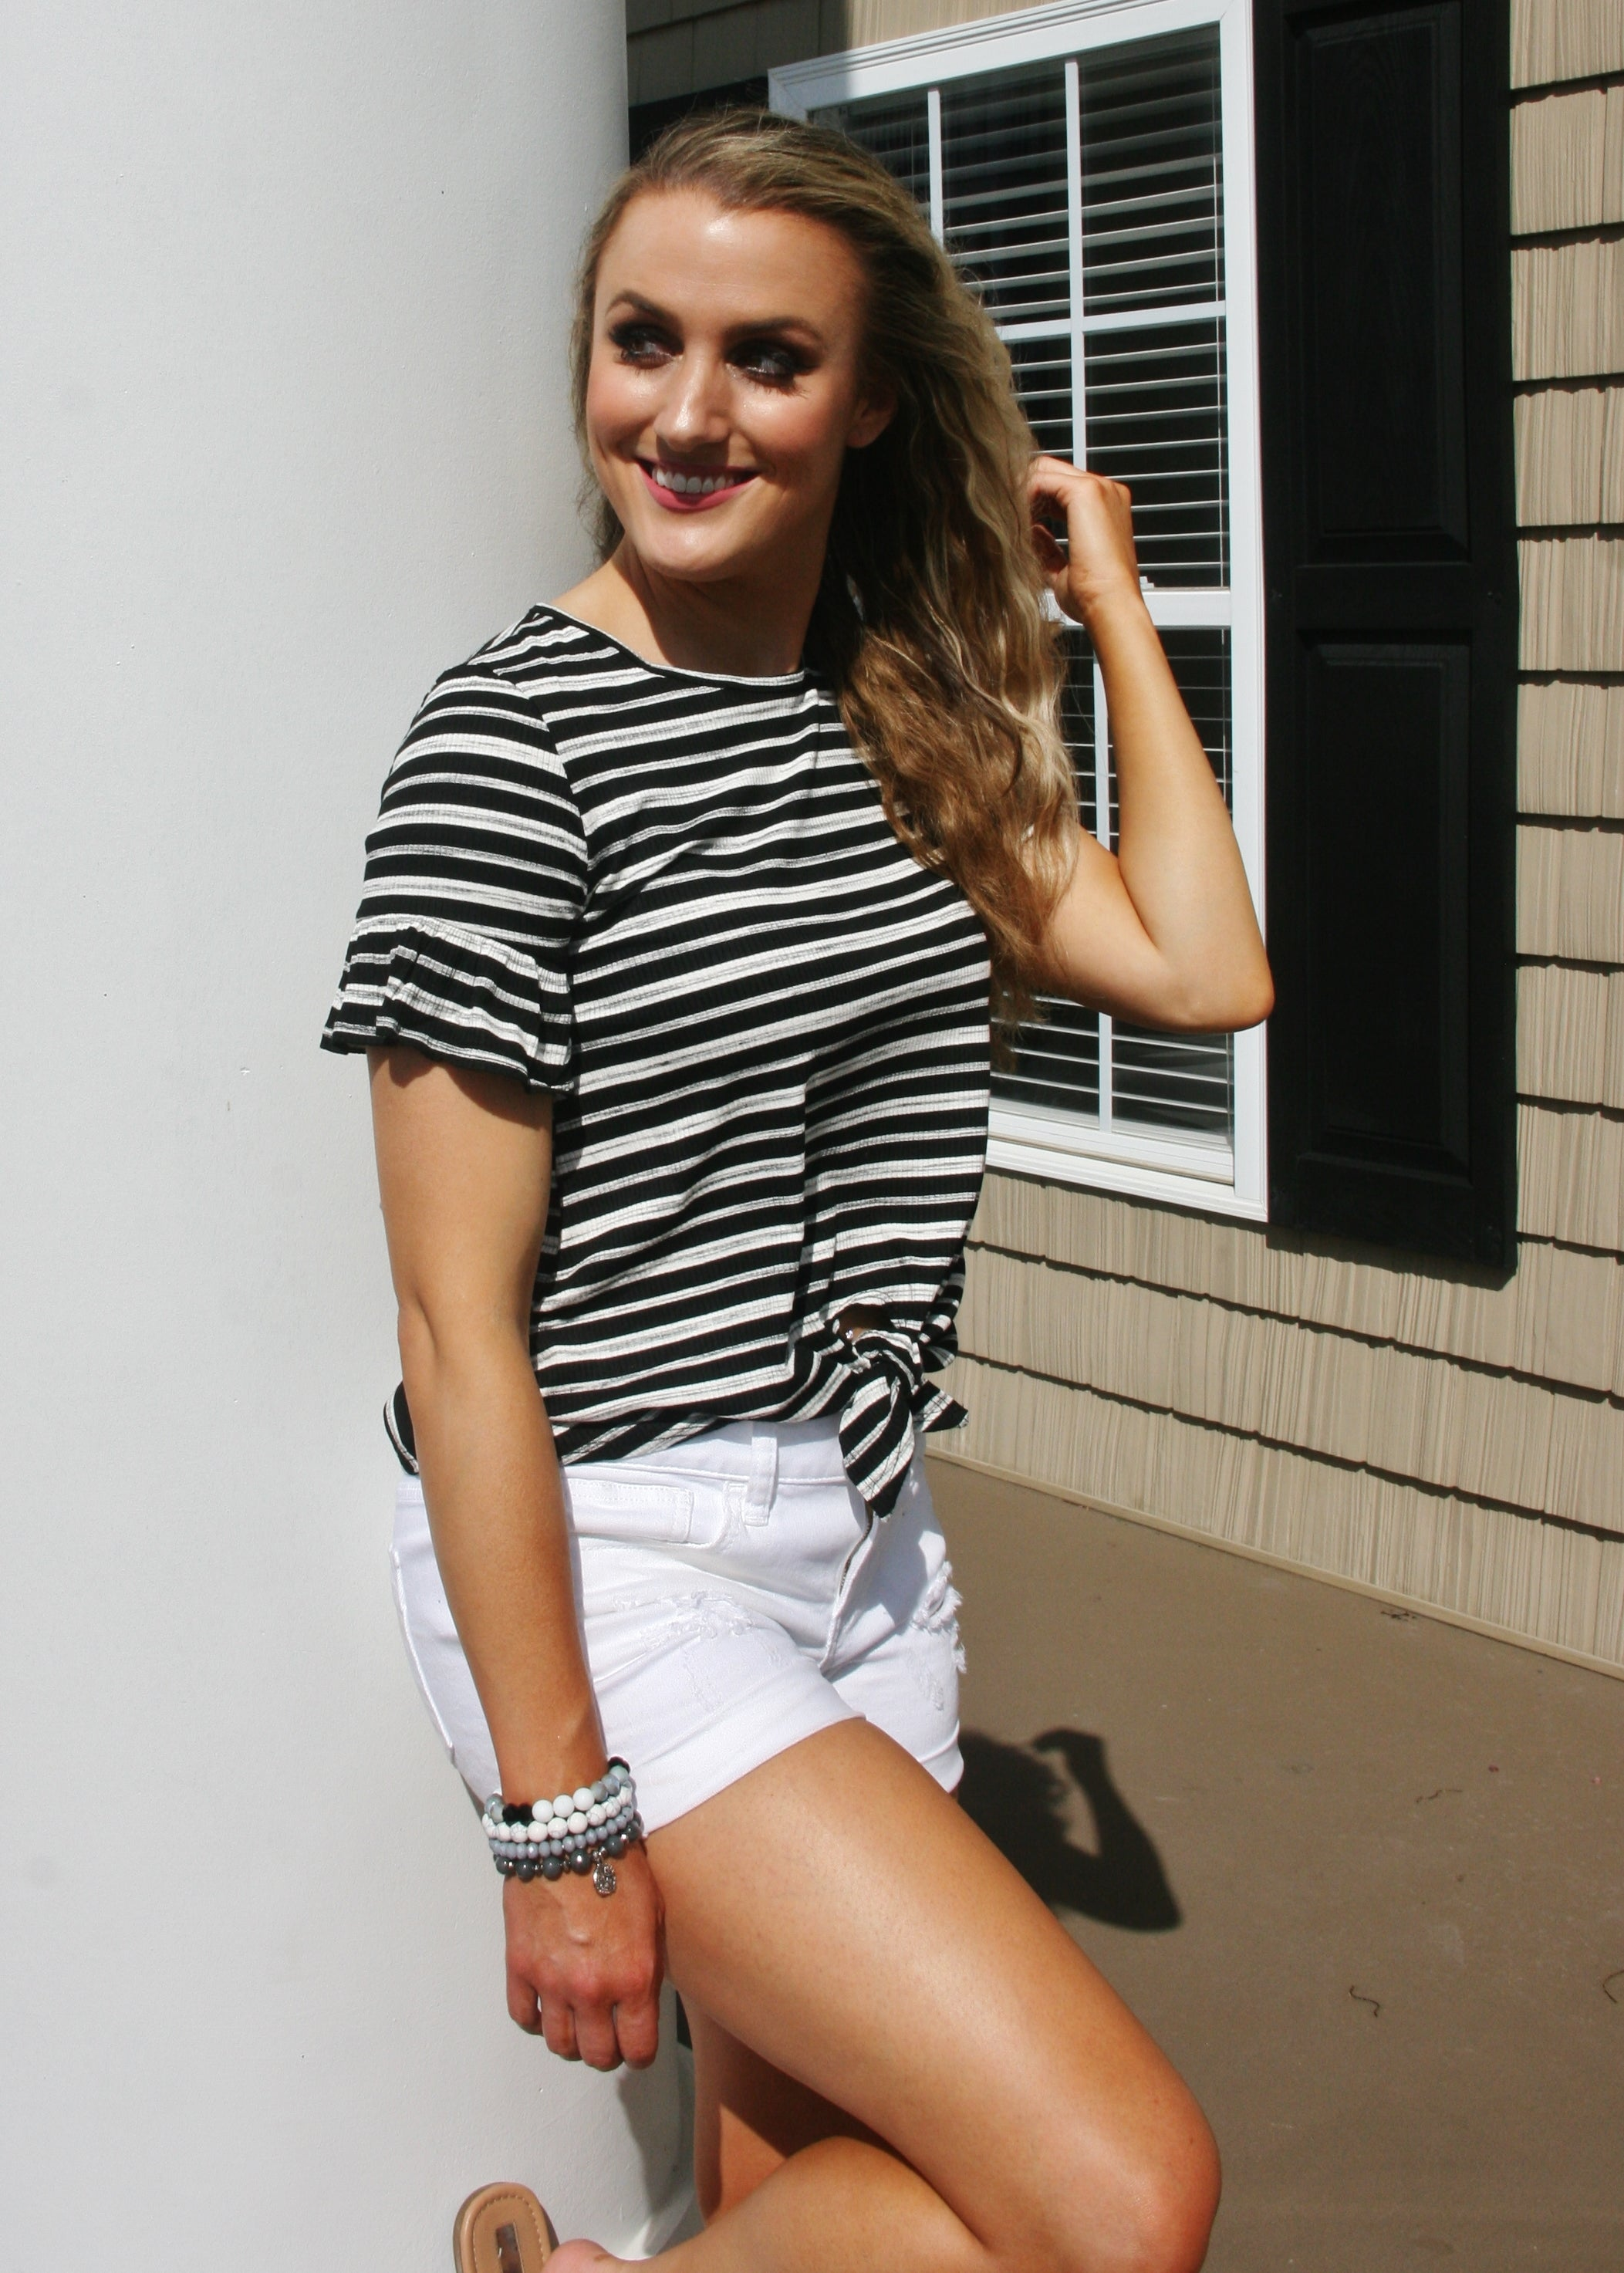 Black and White and Cute All Over!